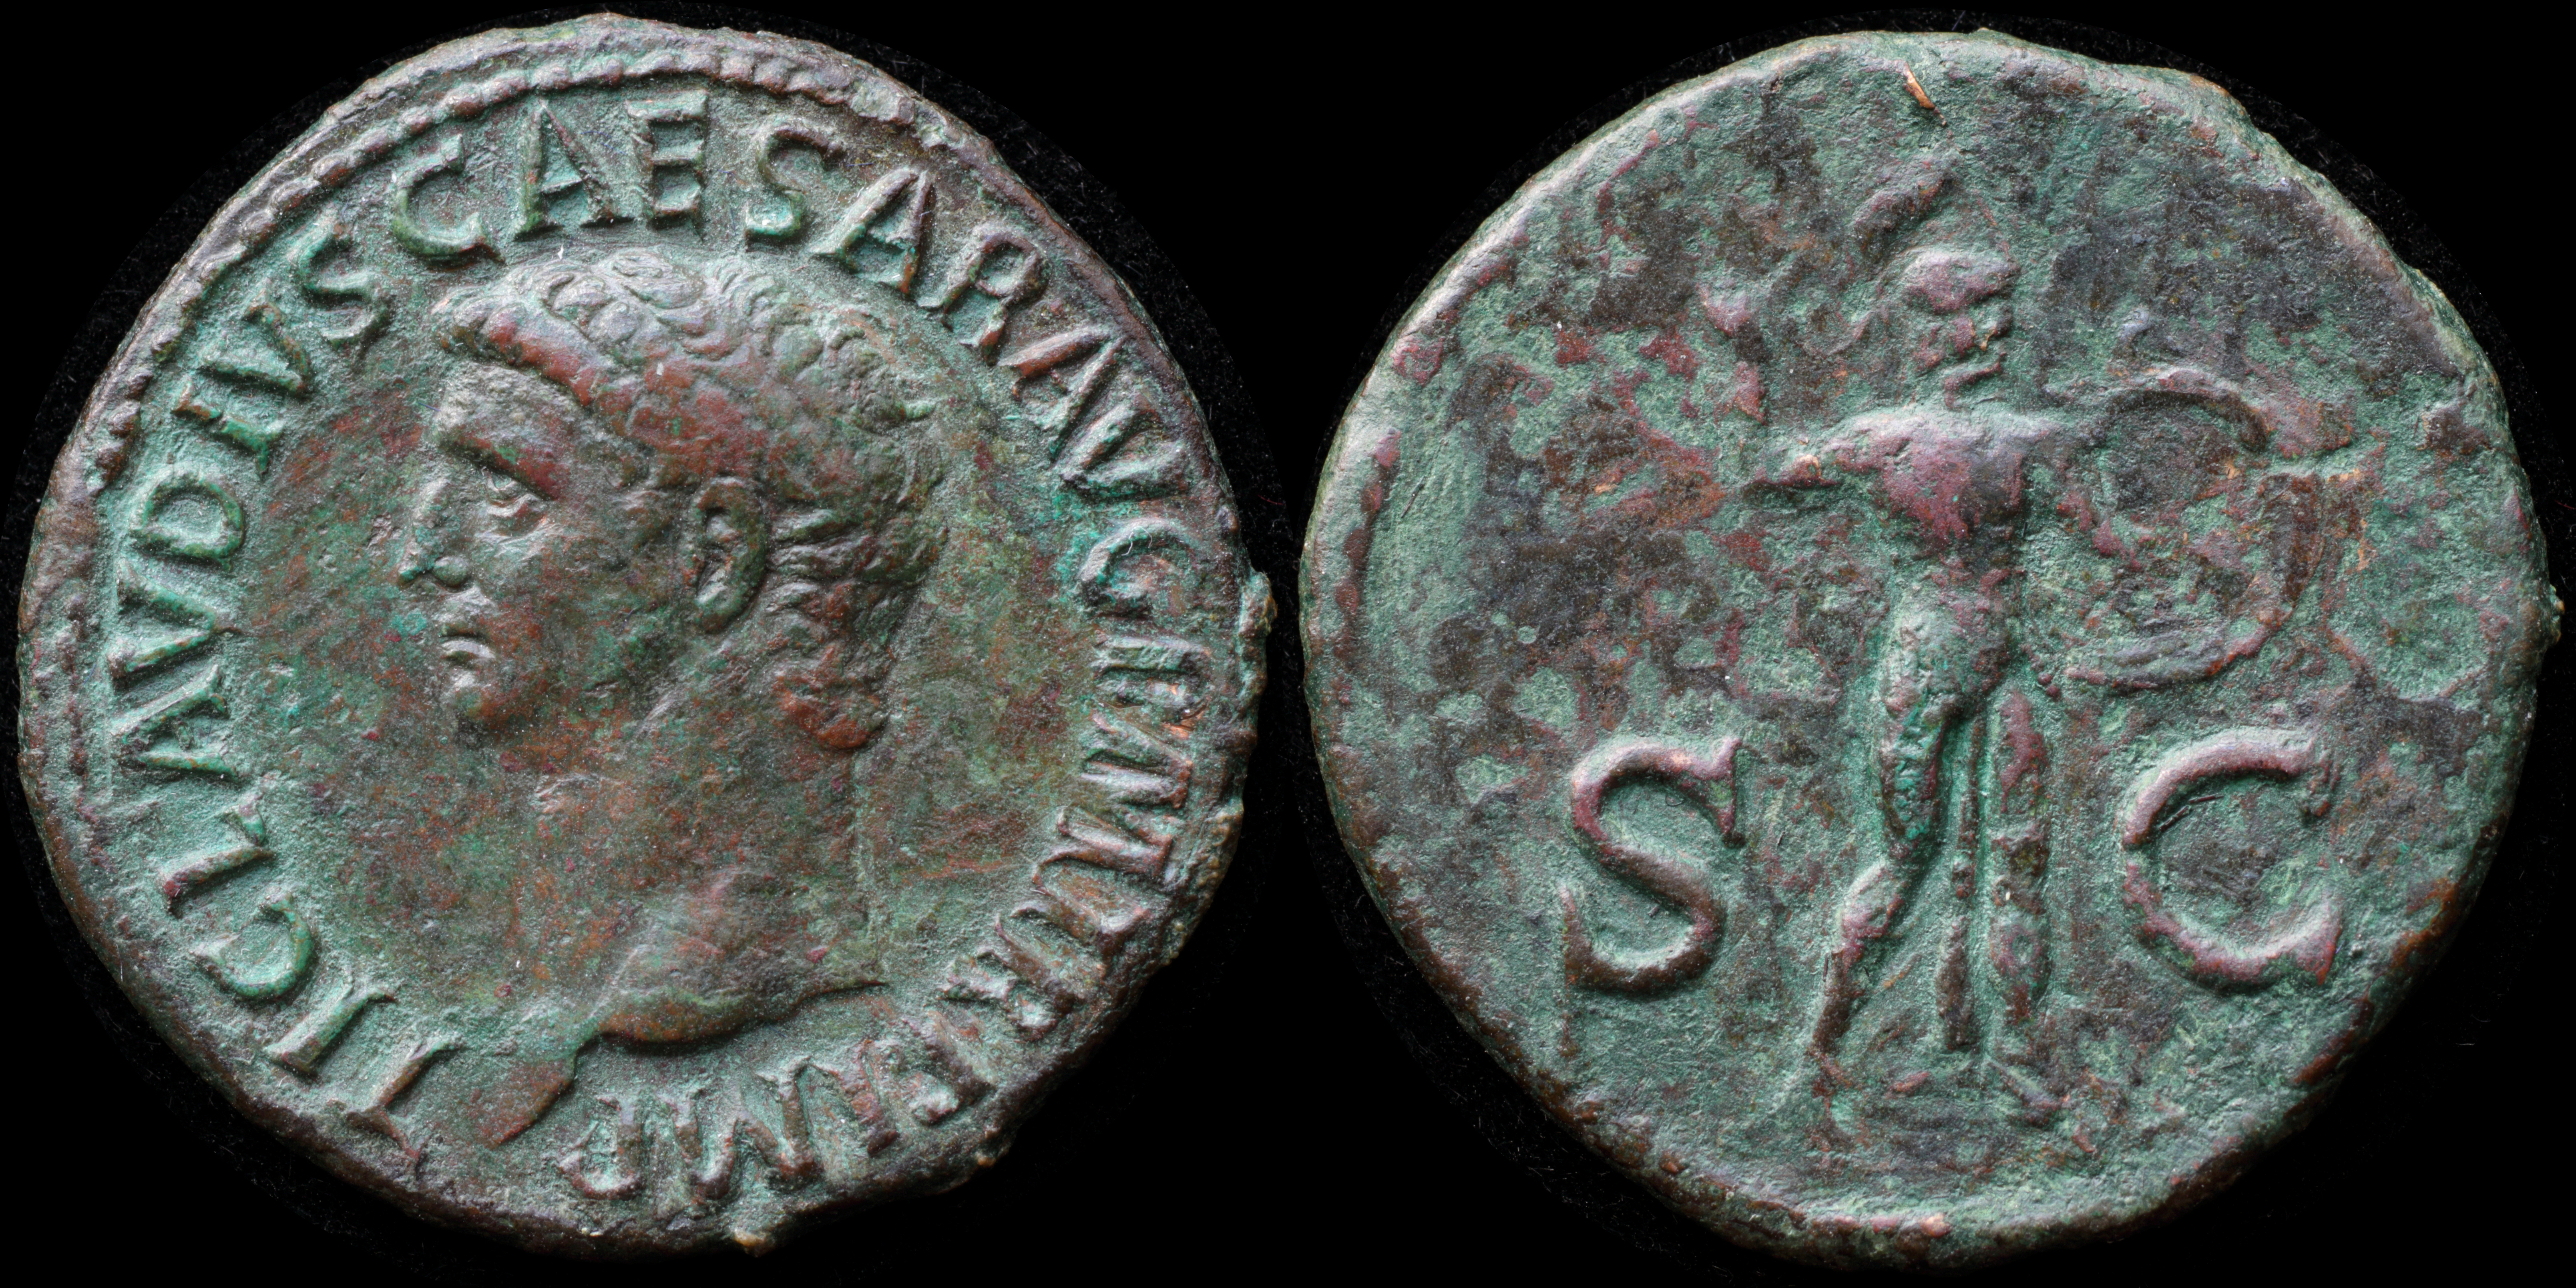 /Files/Images/Coinsite/CoinDB/Claudius_Minerva.jpg